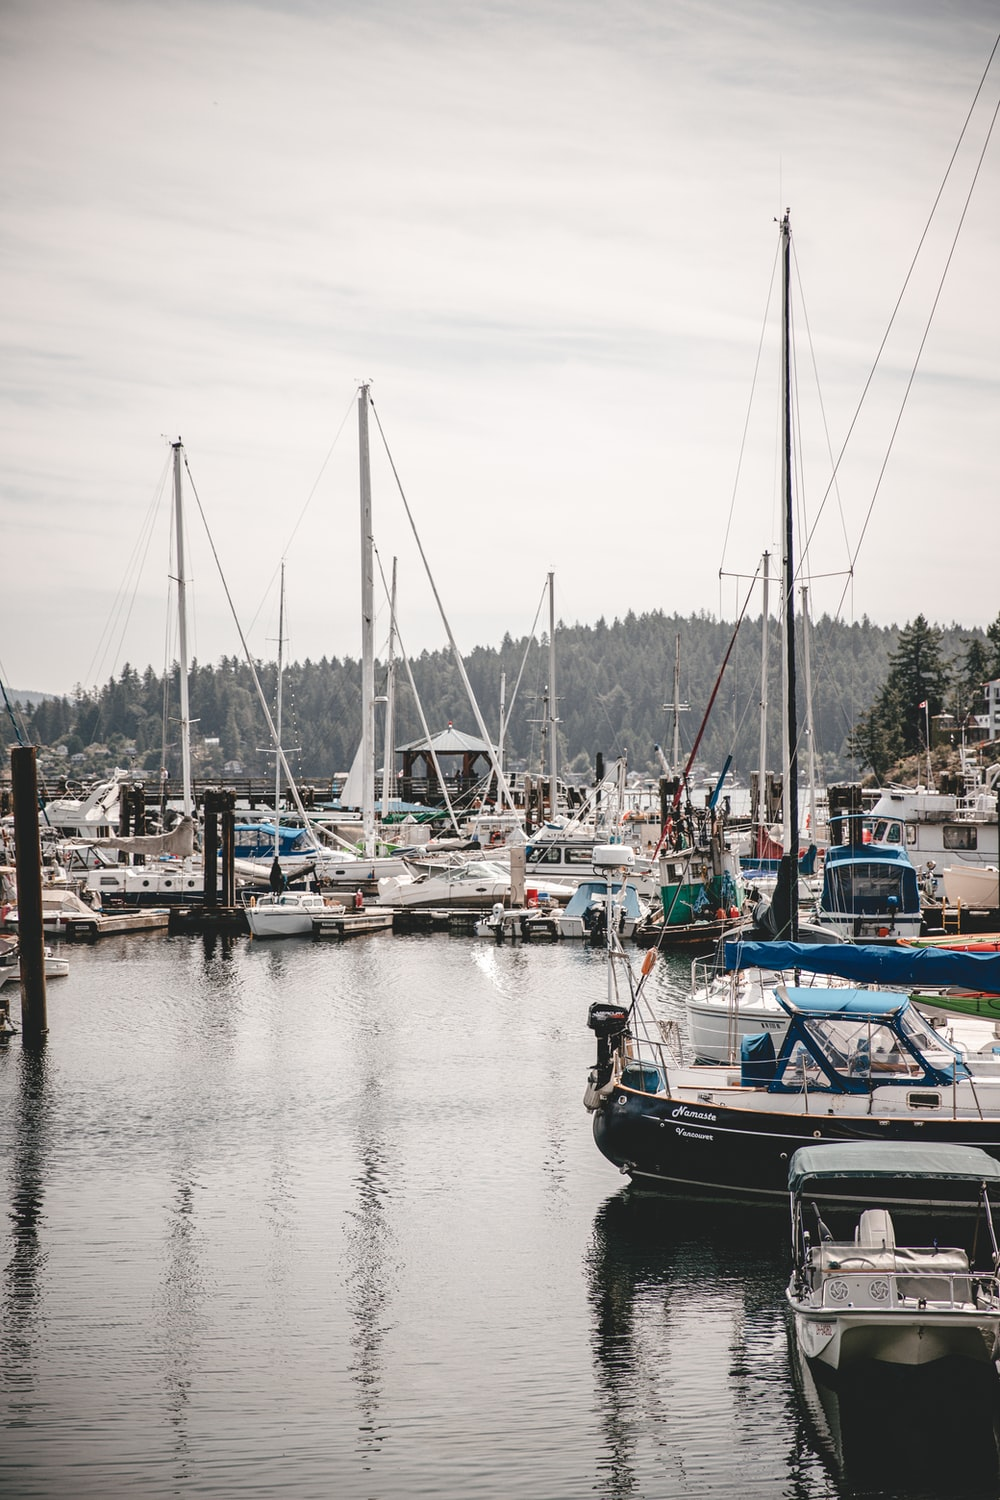 boat lot on body of water during daytime